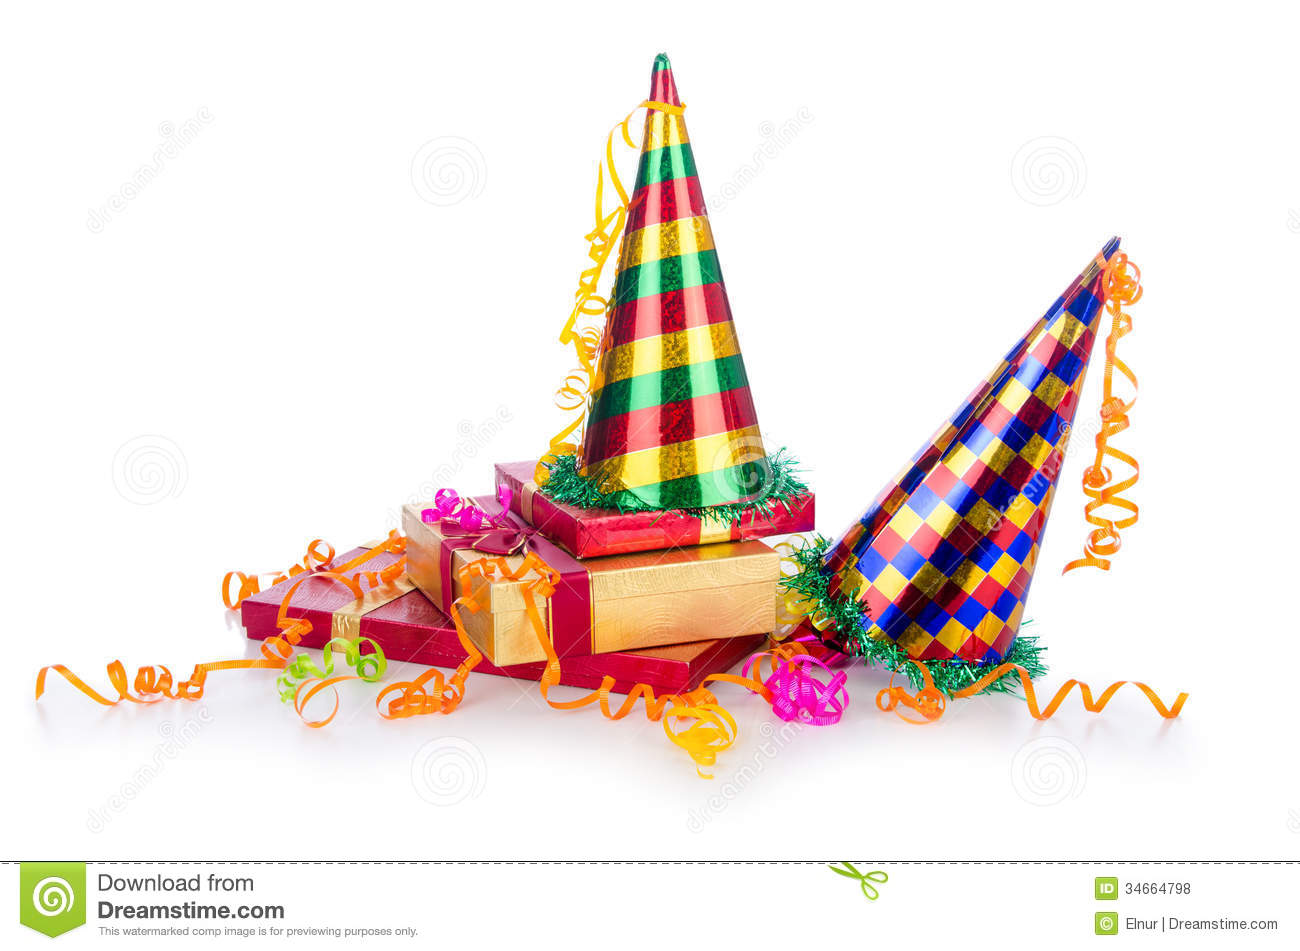 Party Items Royalty Free Stock Photos - Image: 34664798